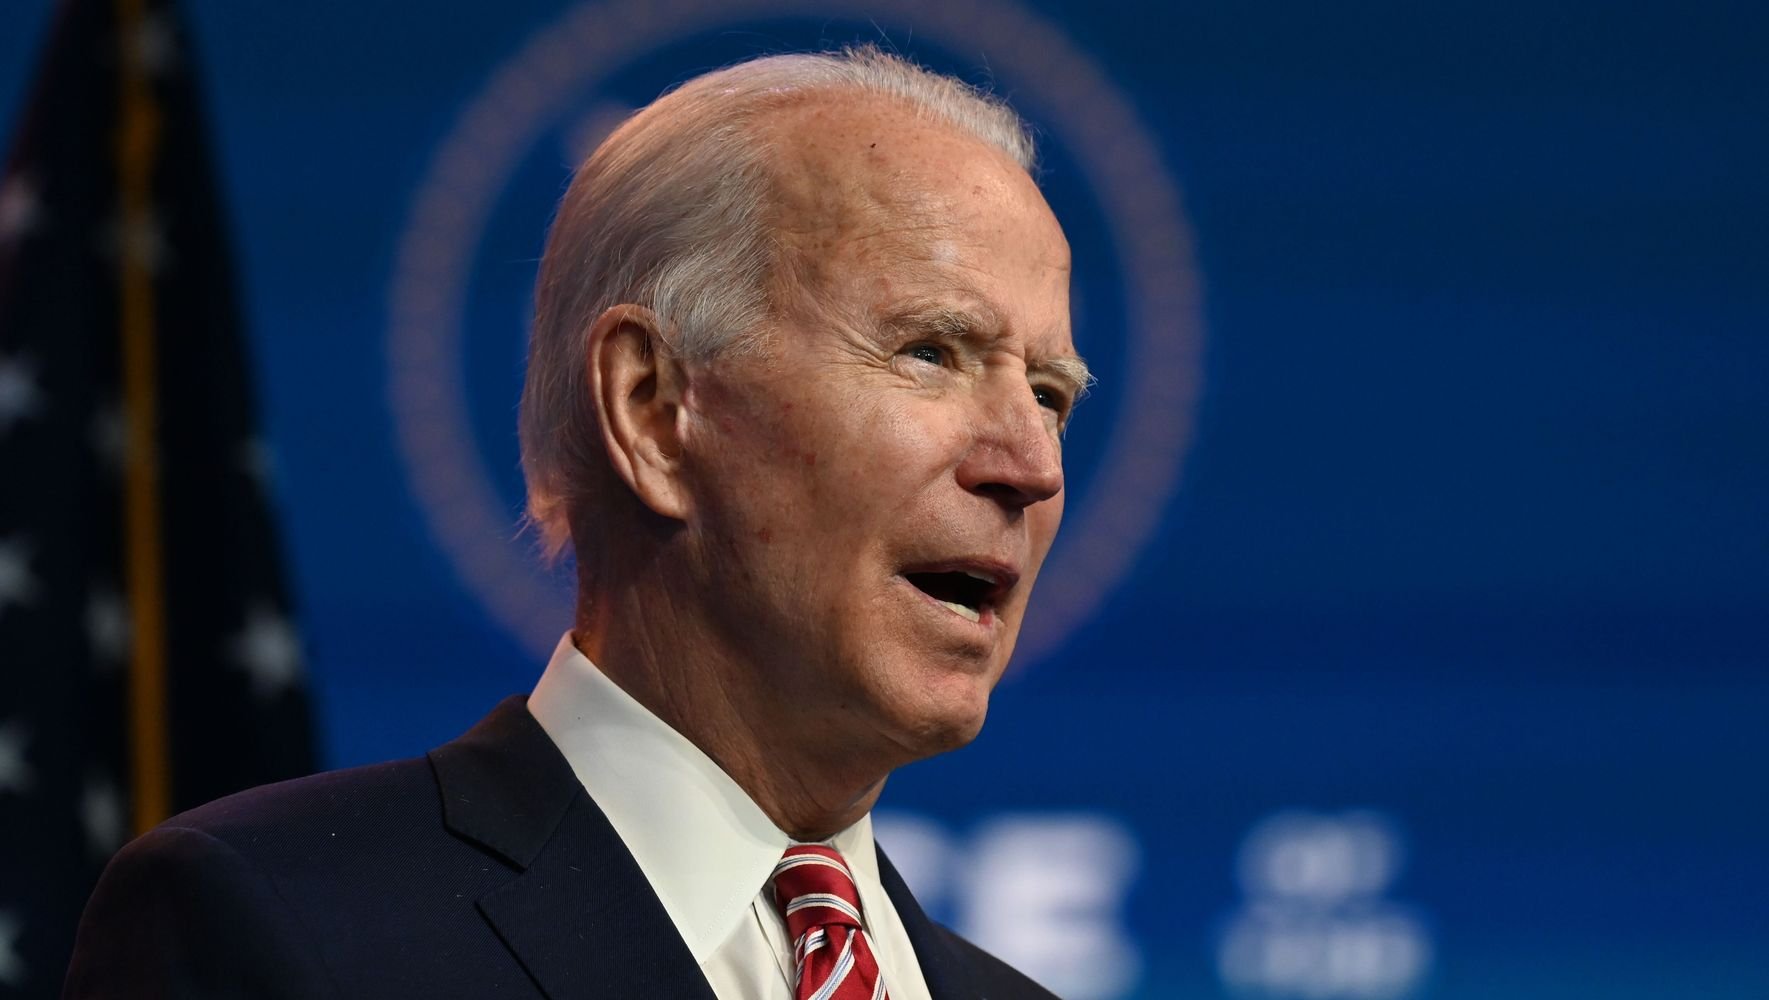 Biden Filling Top White House Team With Campaign Veterans